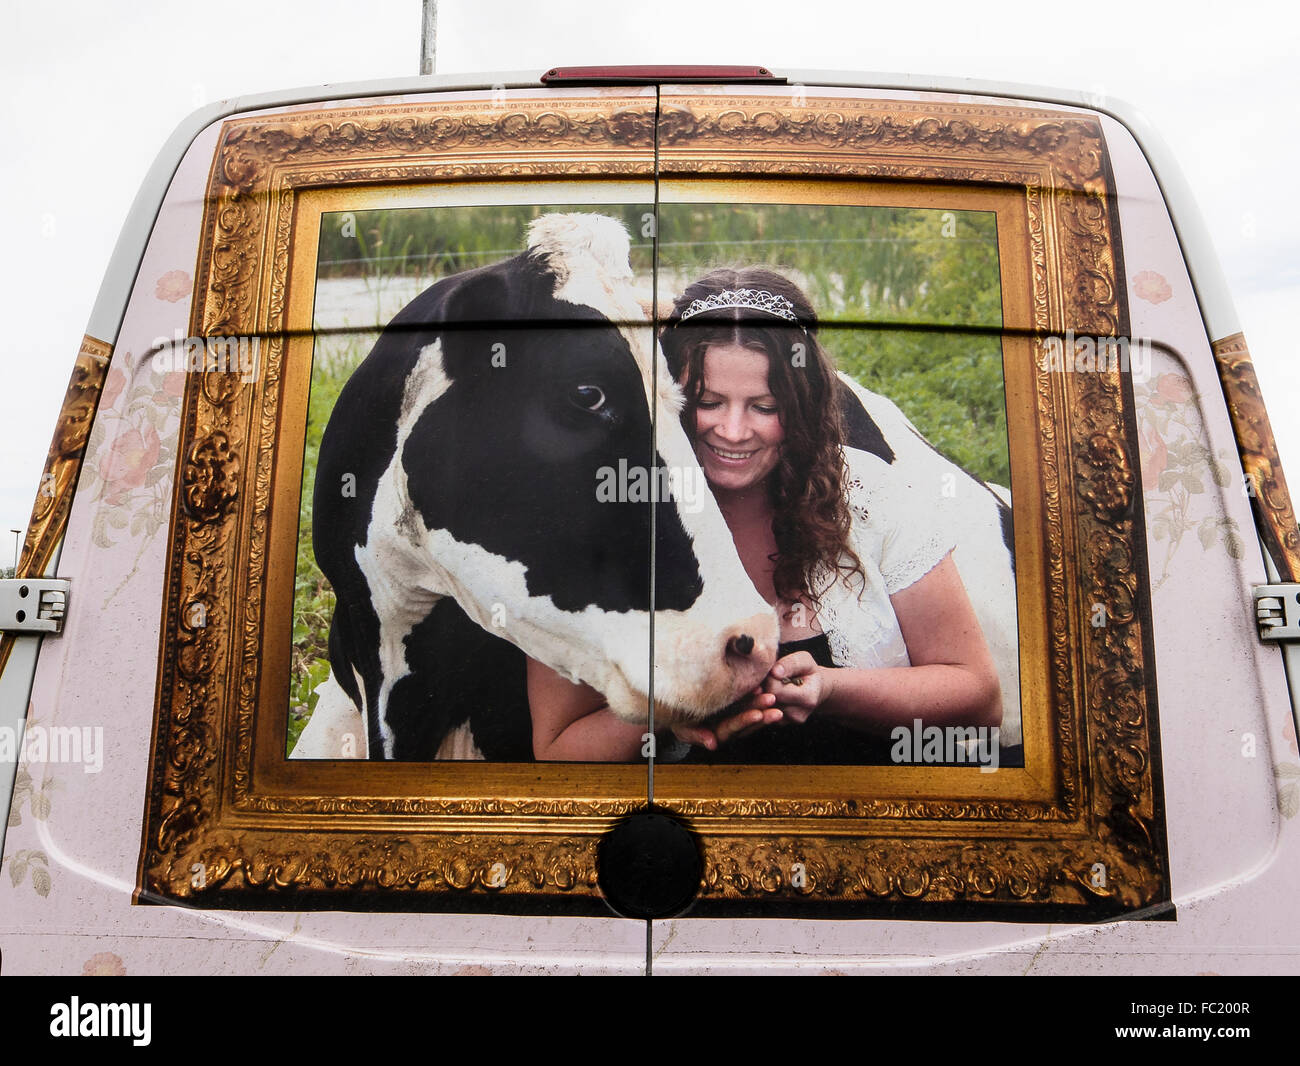 Rear of white van delivering organic milk to a customer showing painting illustrating provenance - Stock Image